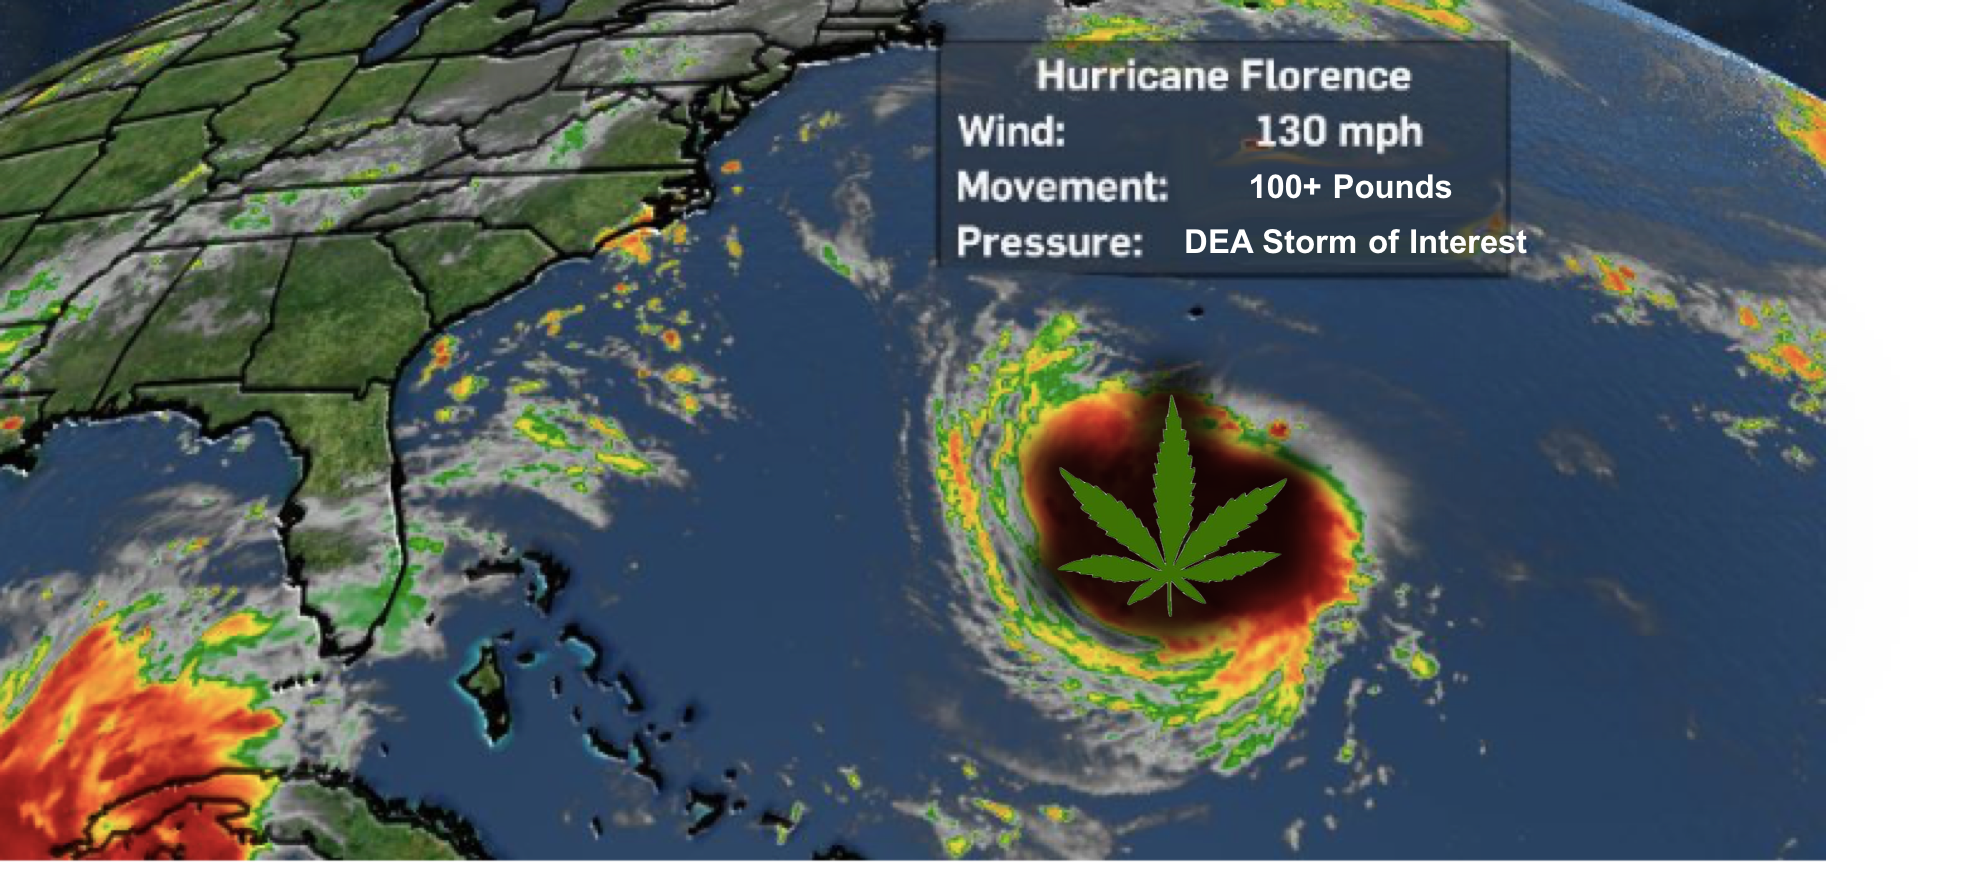 Hurricane Florence is Quickly Becoming Florida's Top Drug Kingpin